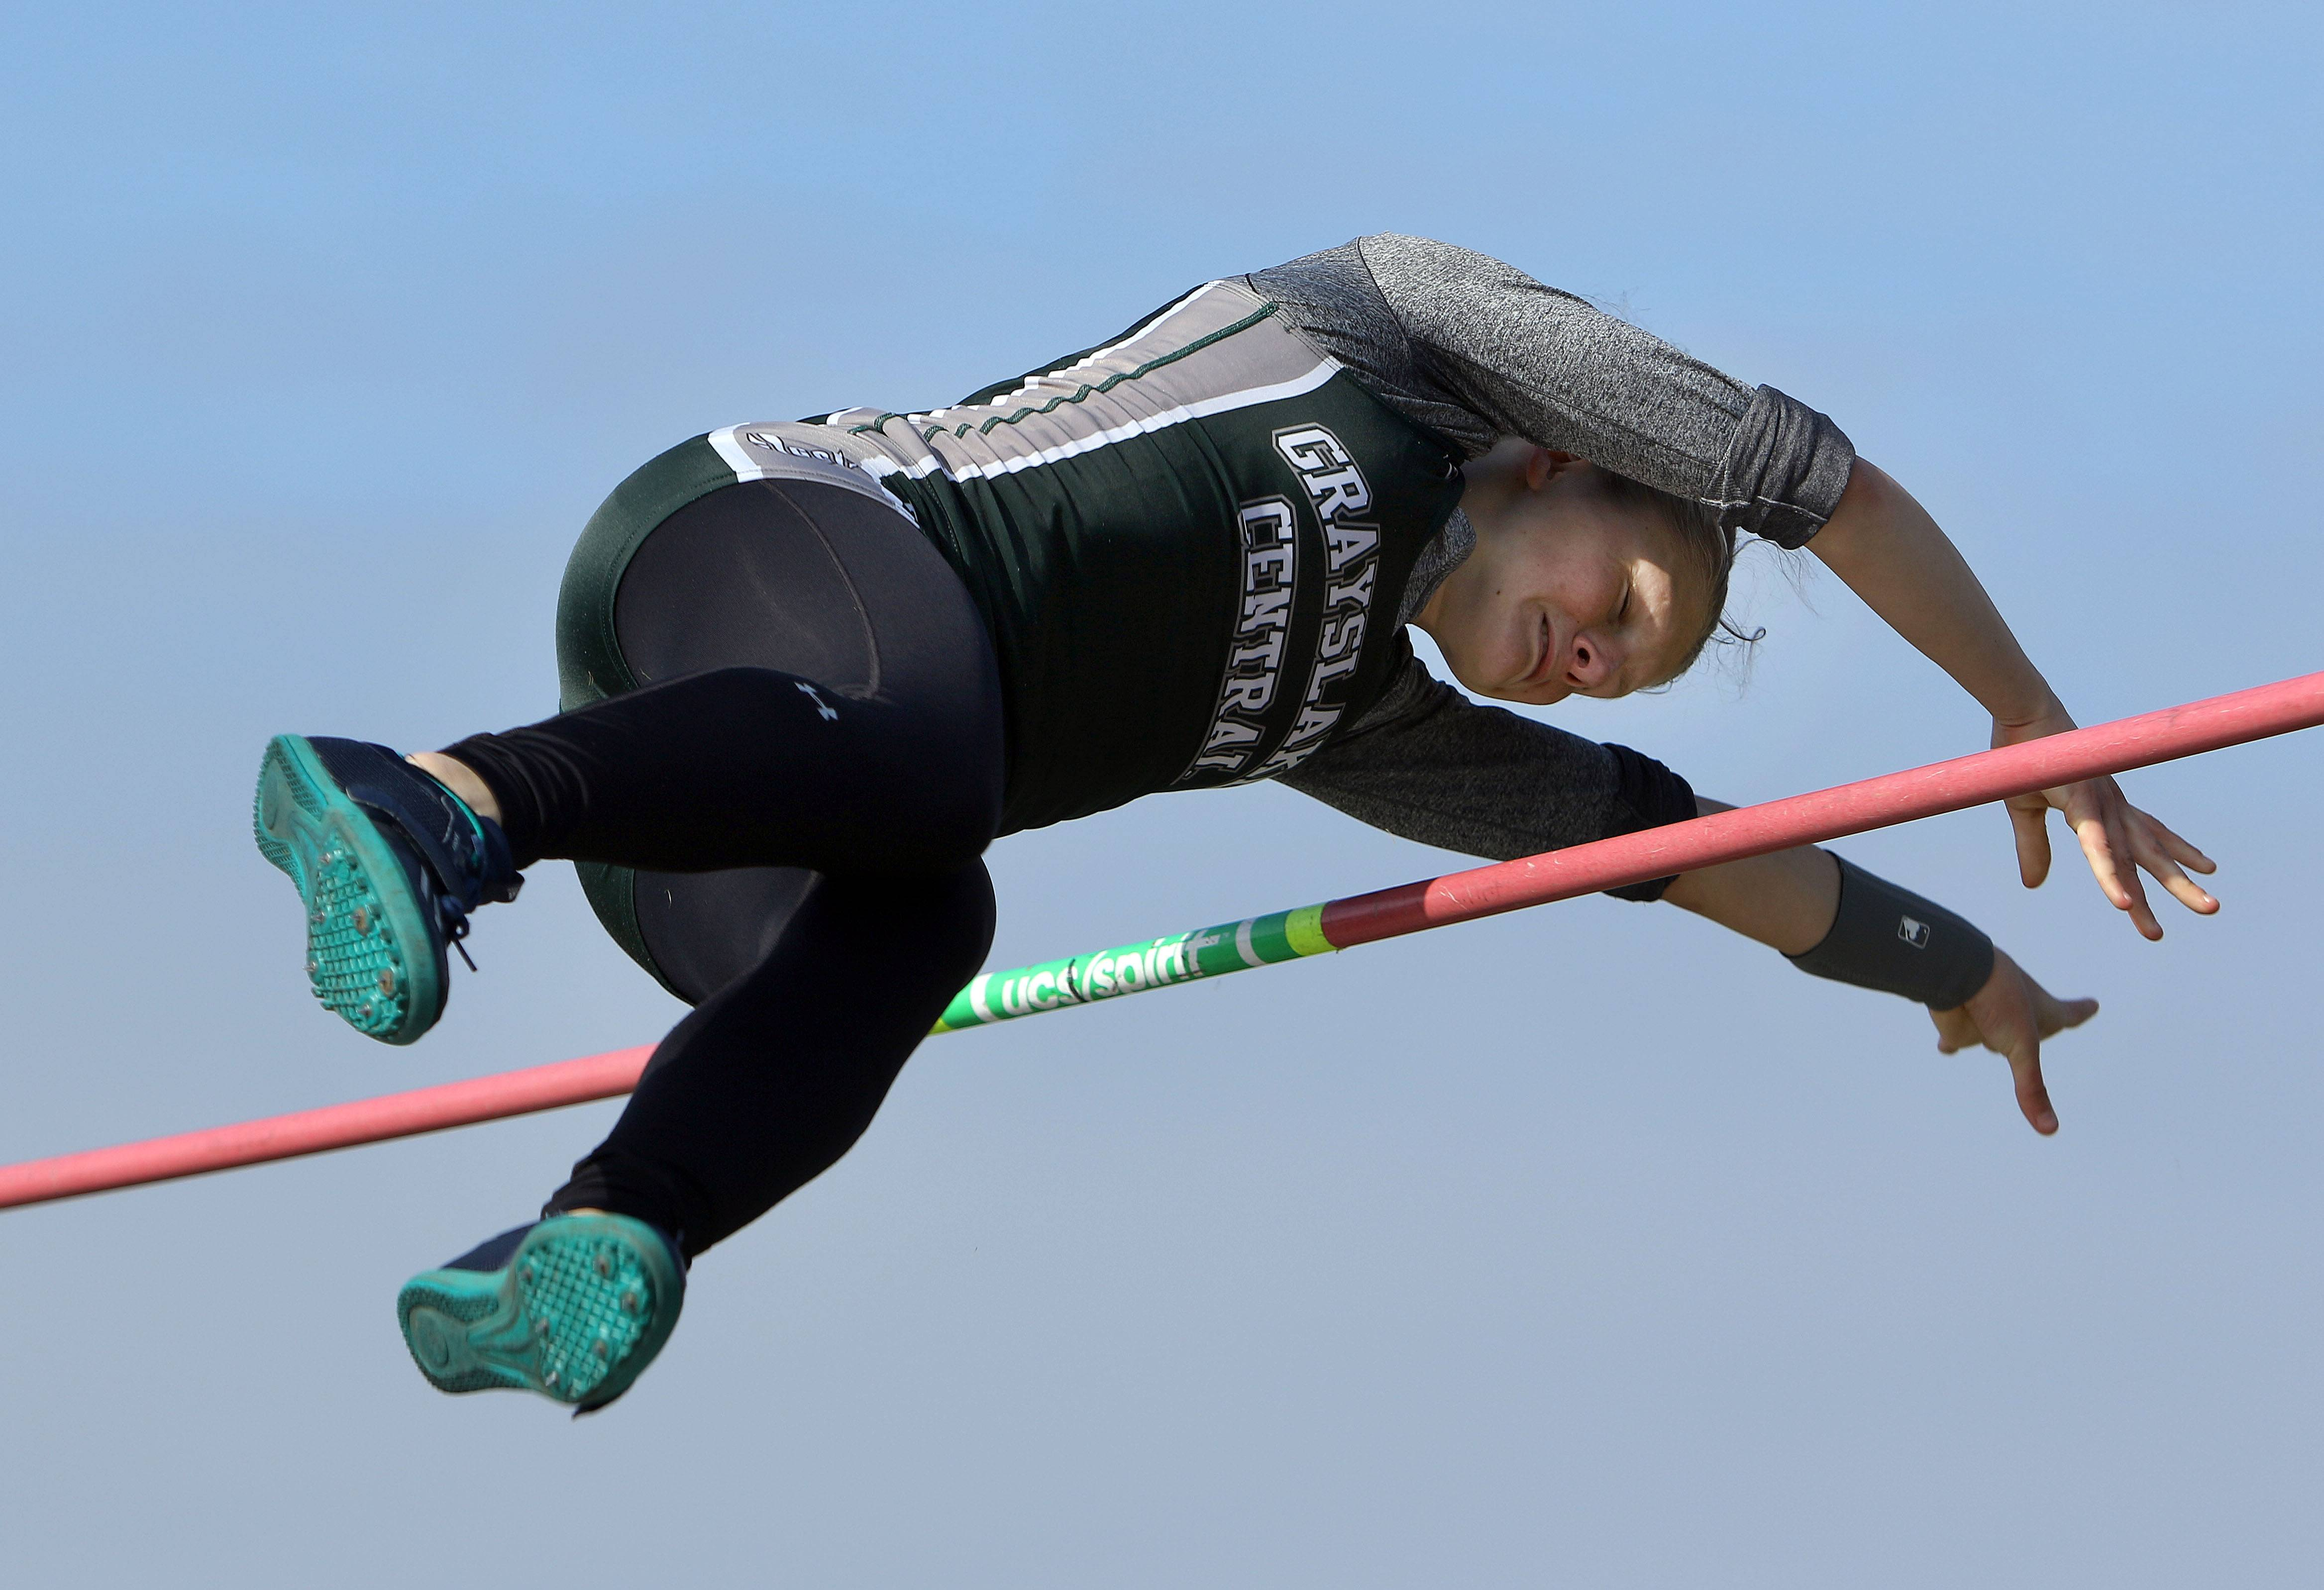 Grayslake Central's Jordan Meciej competes in the pole vault during the Lake County meet Friday at Grayslake North High School.